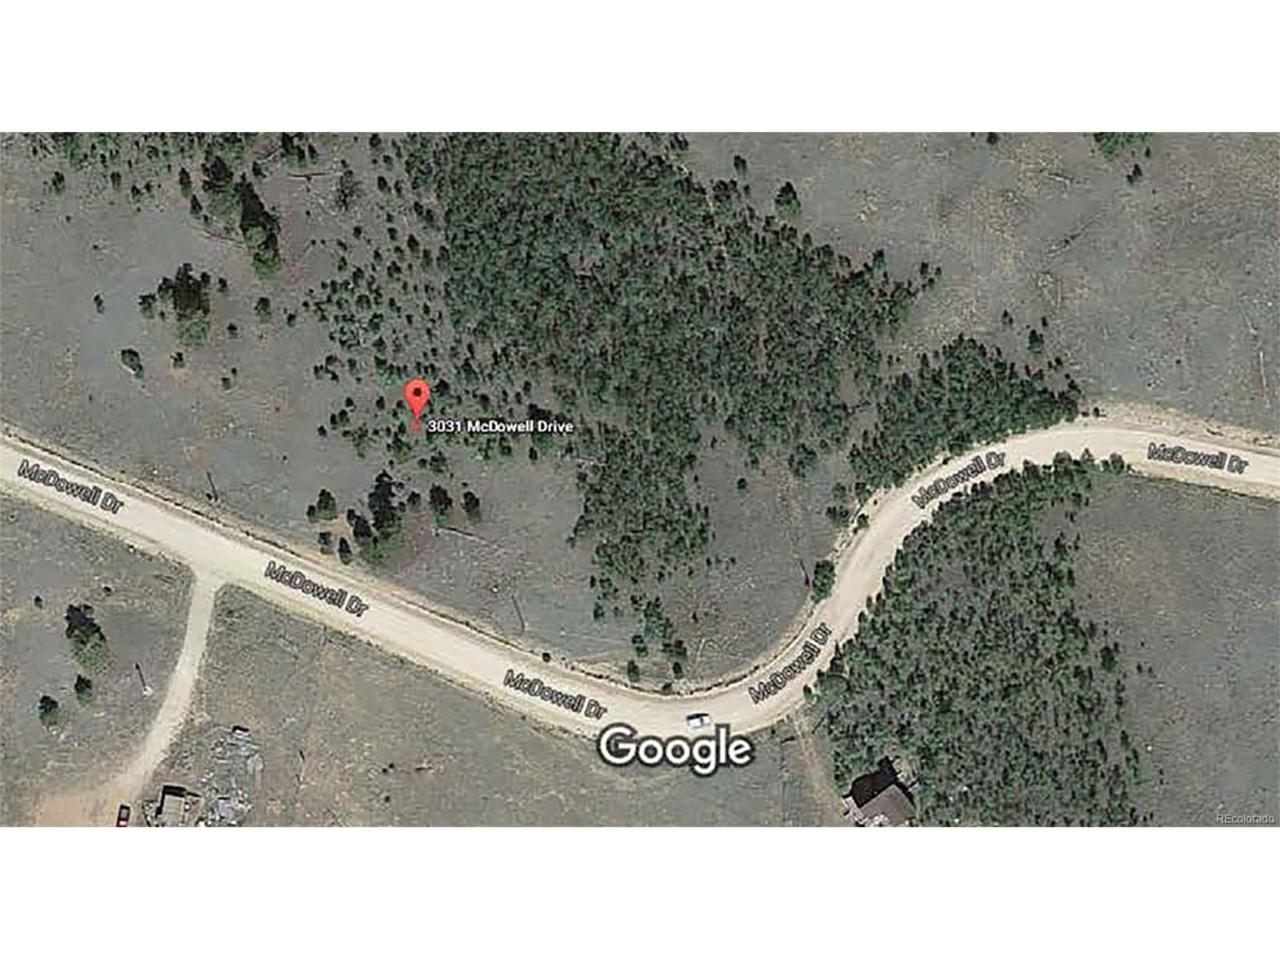 3031 Mcdowell Drive, Como, CO 80432 (MLS #7325443) :: 8z Real Estate